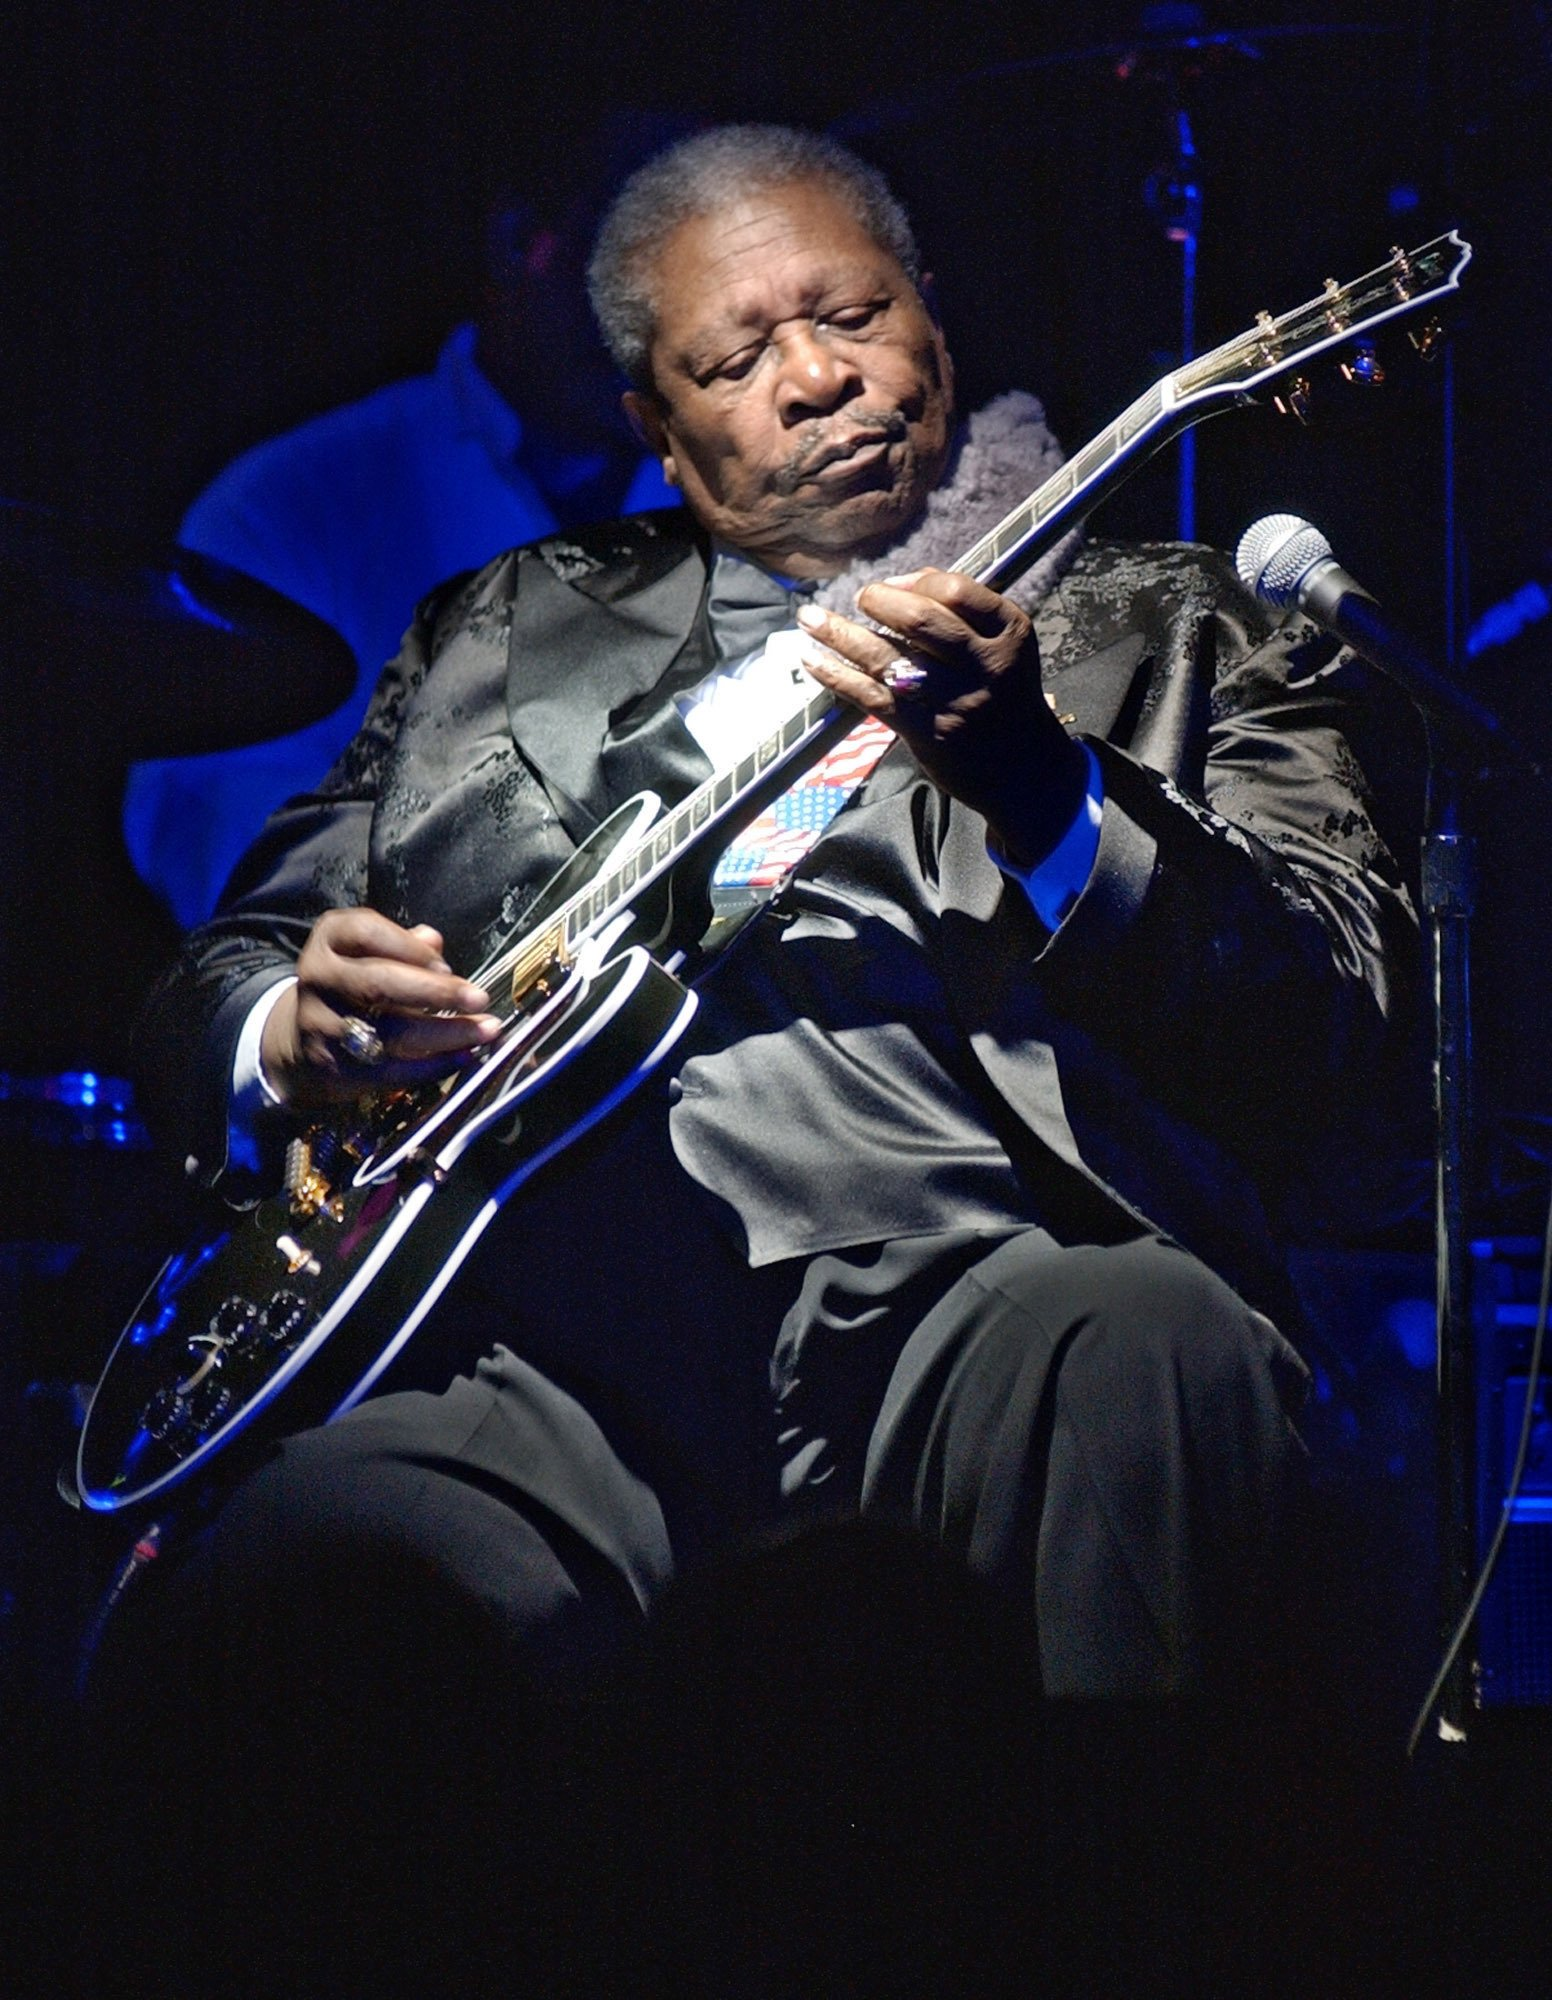 1 of B.B. King's 'Lucille' guitars sold for $280K at auction